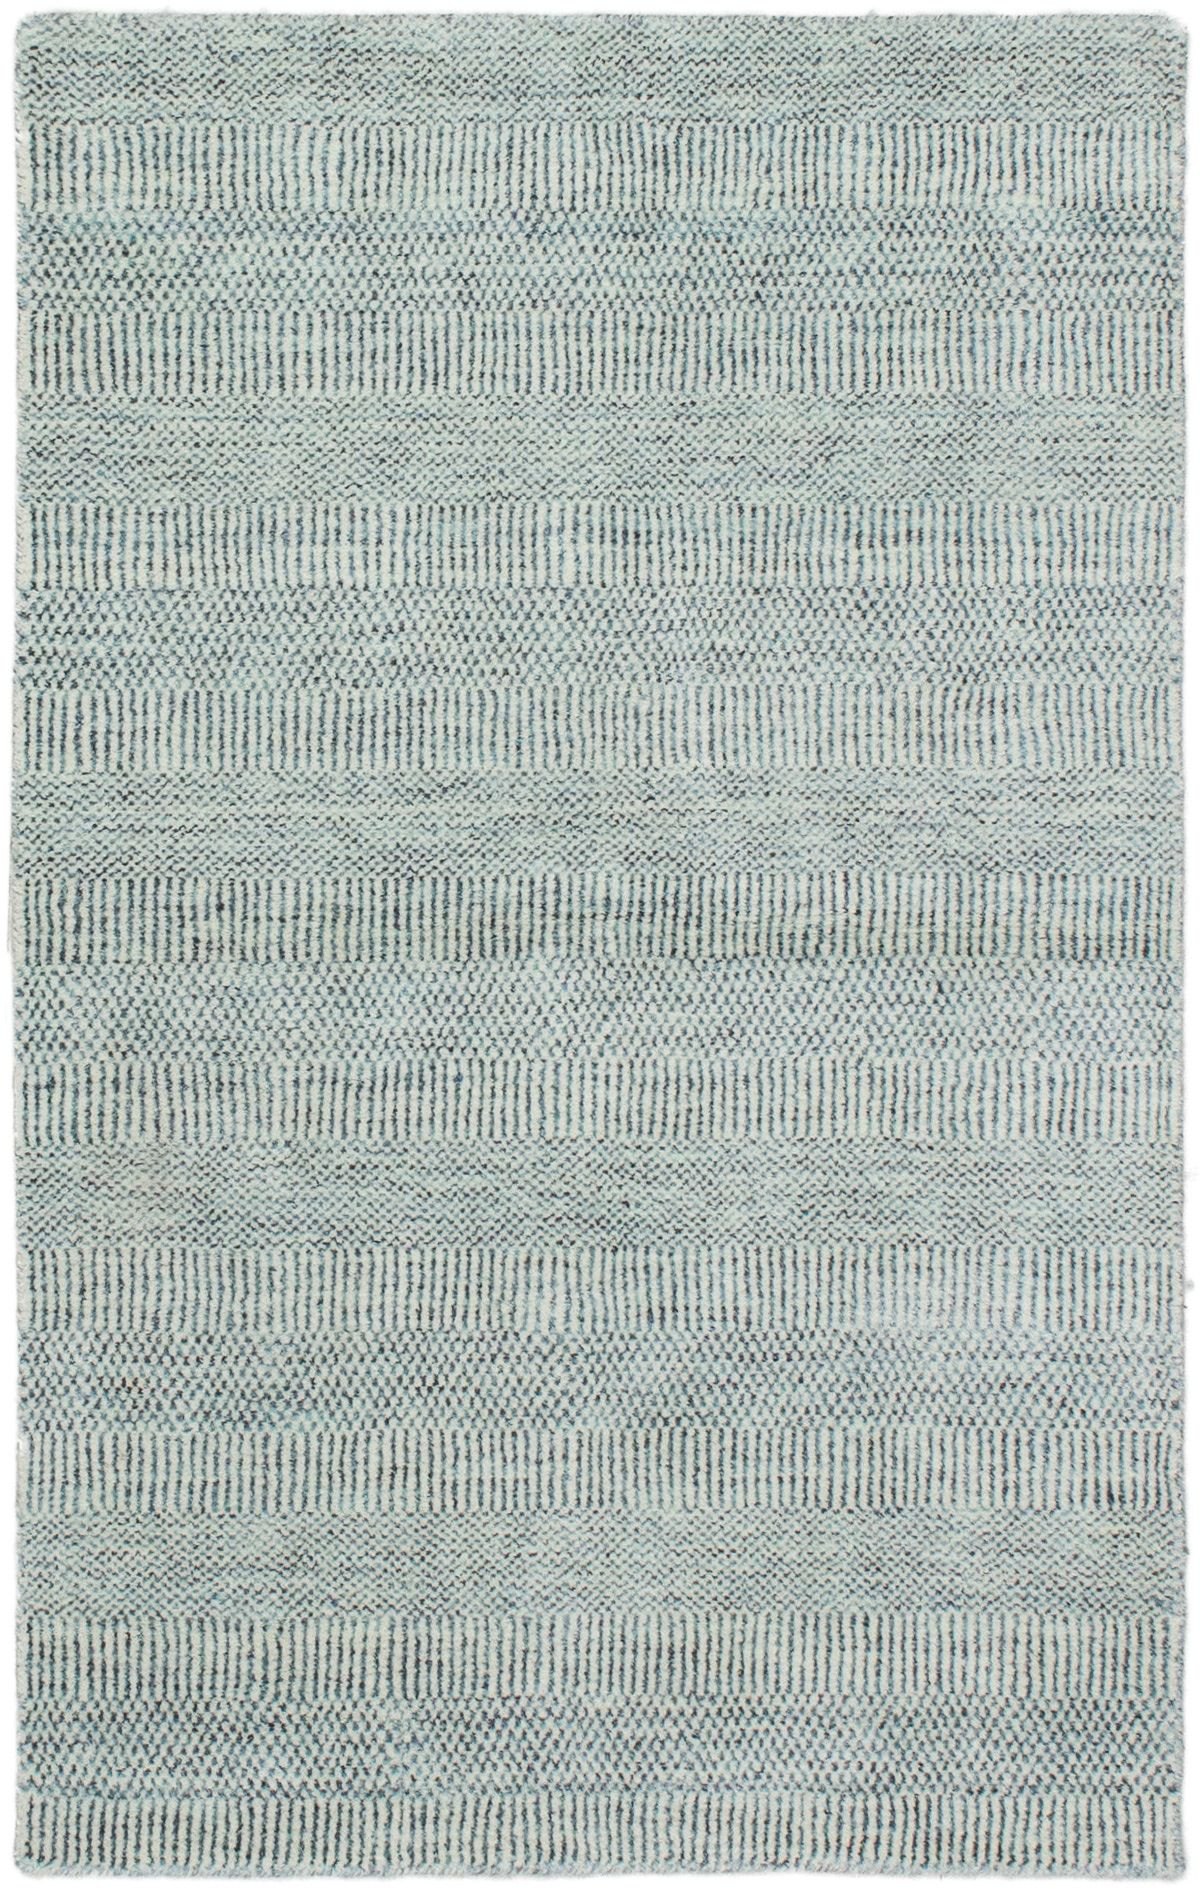 Indian Pearl 3 0 X 5 0 Hand Knotted Viscose Wool Blue Rug Ecarpetgallery